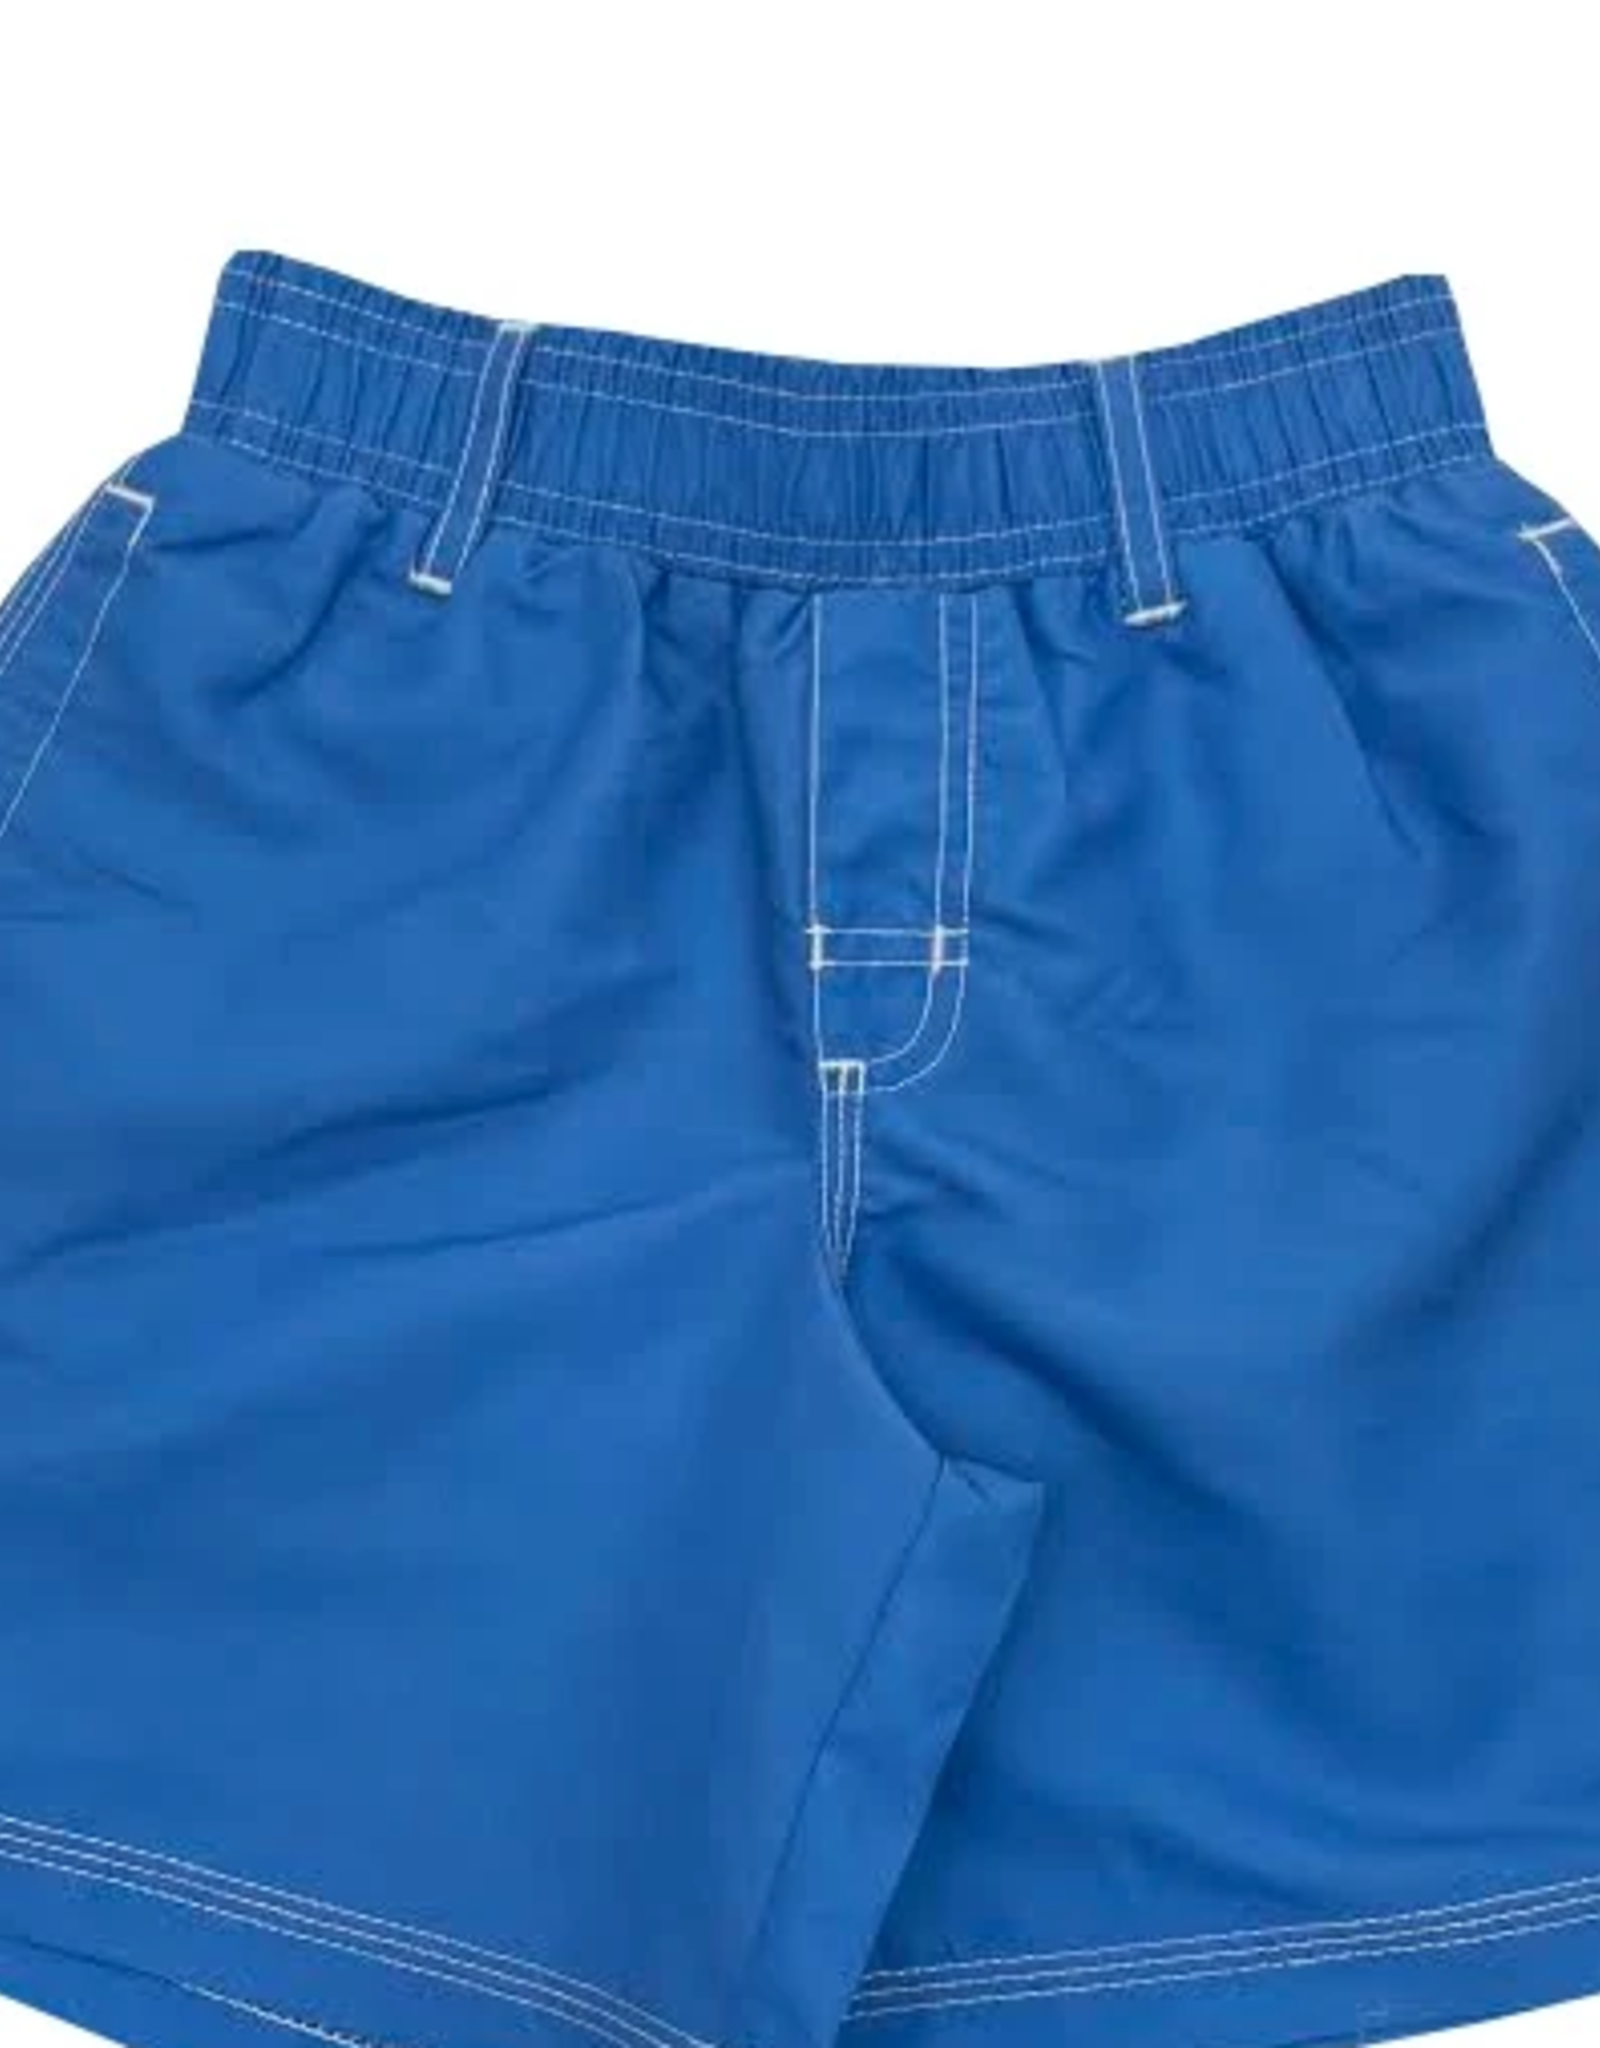 SouthBound Performance Shorts